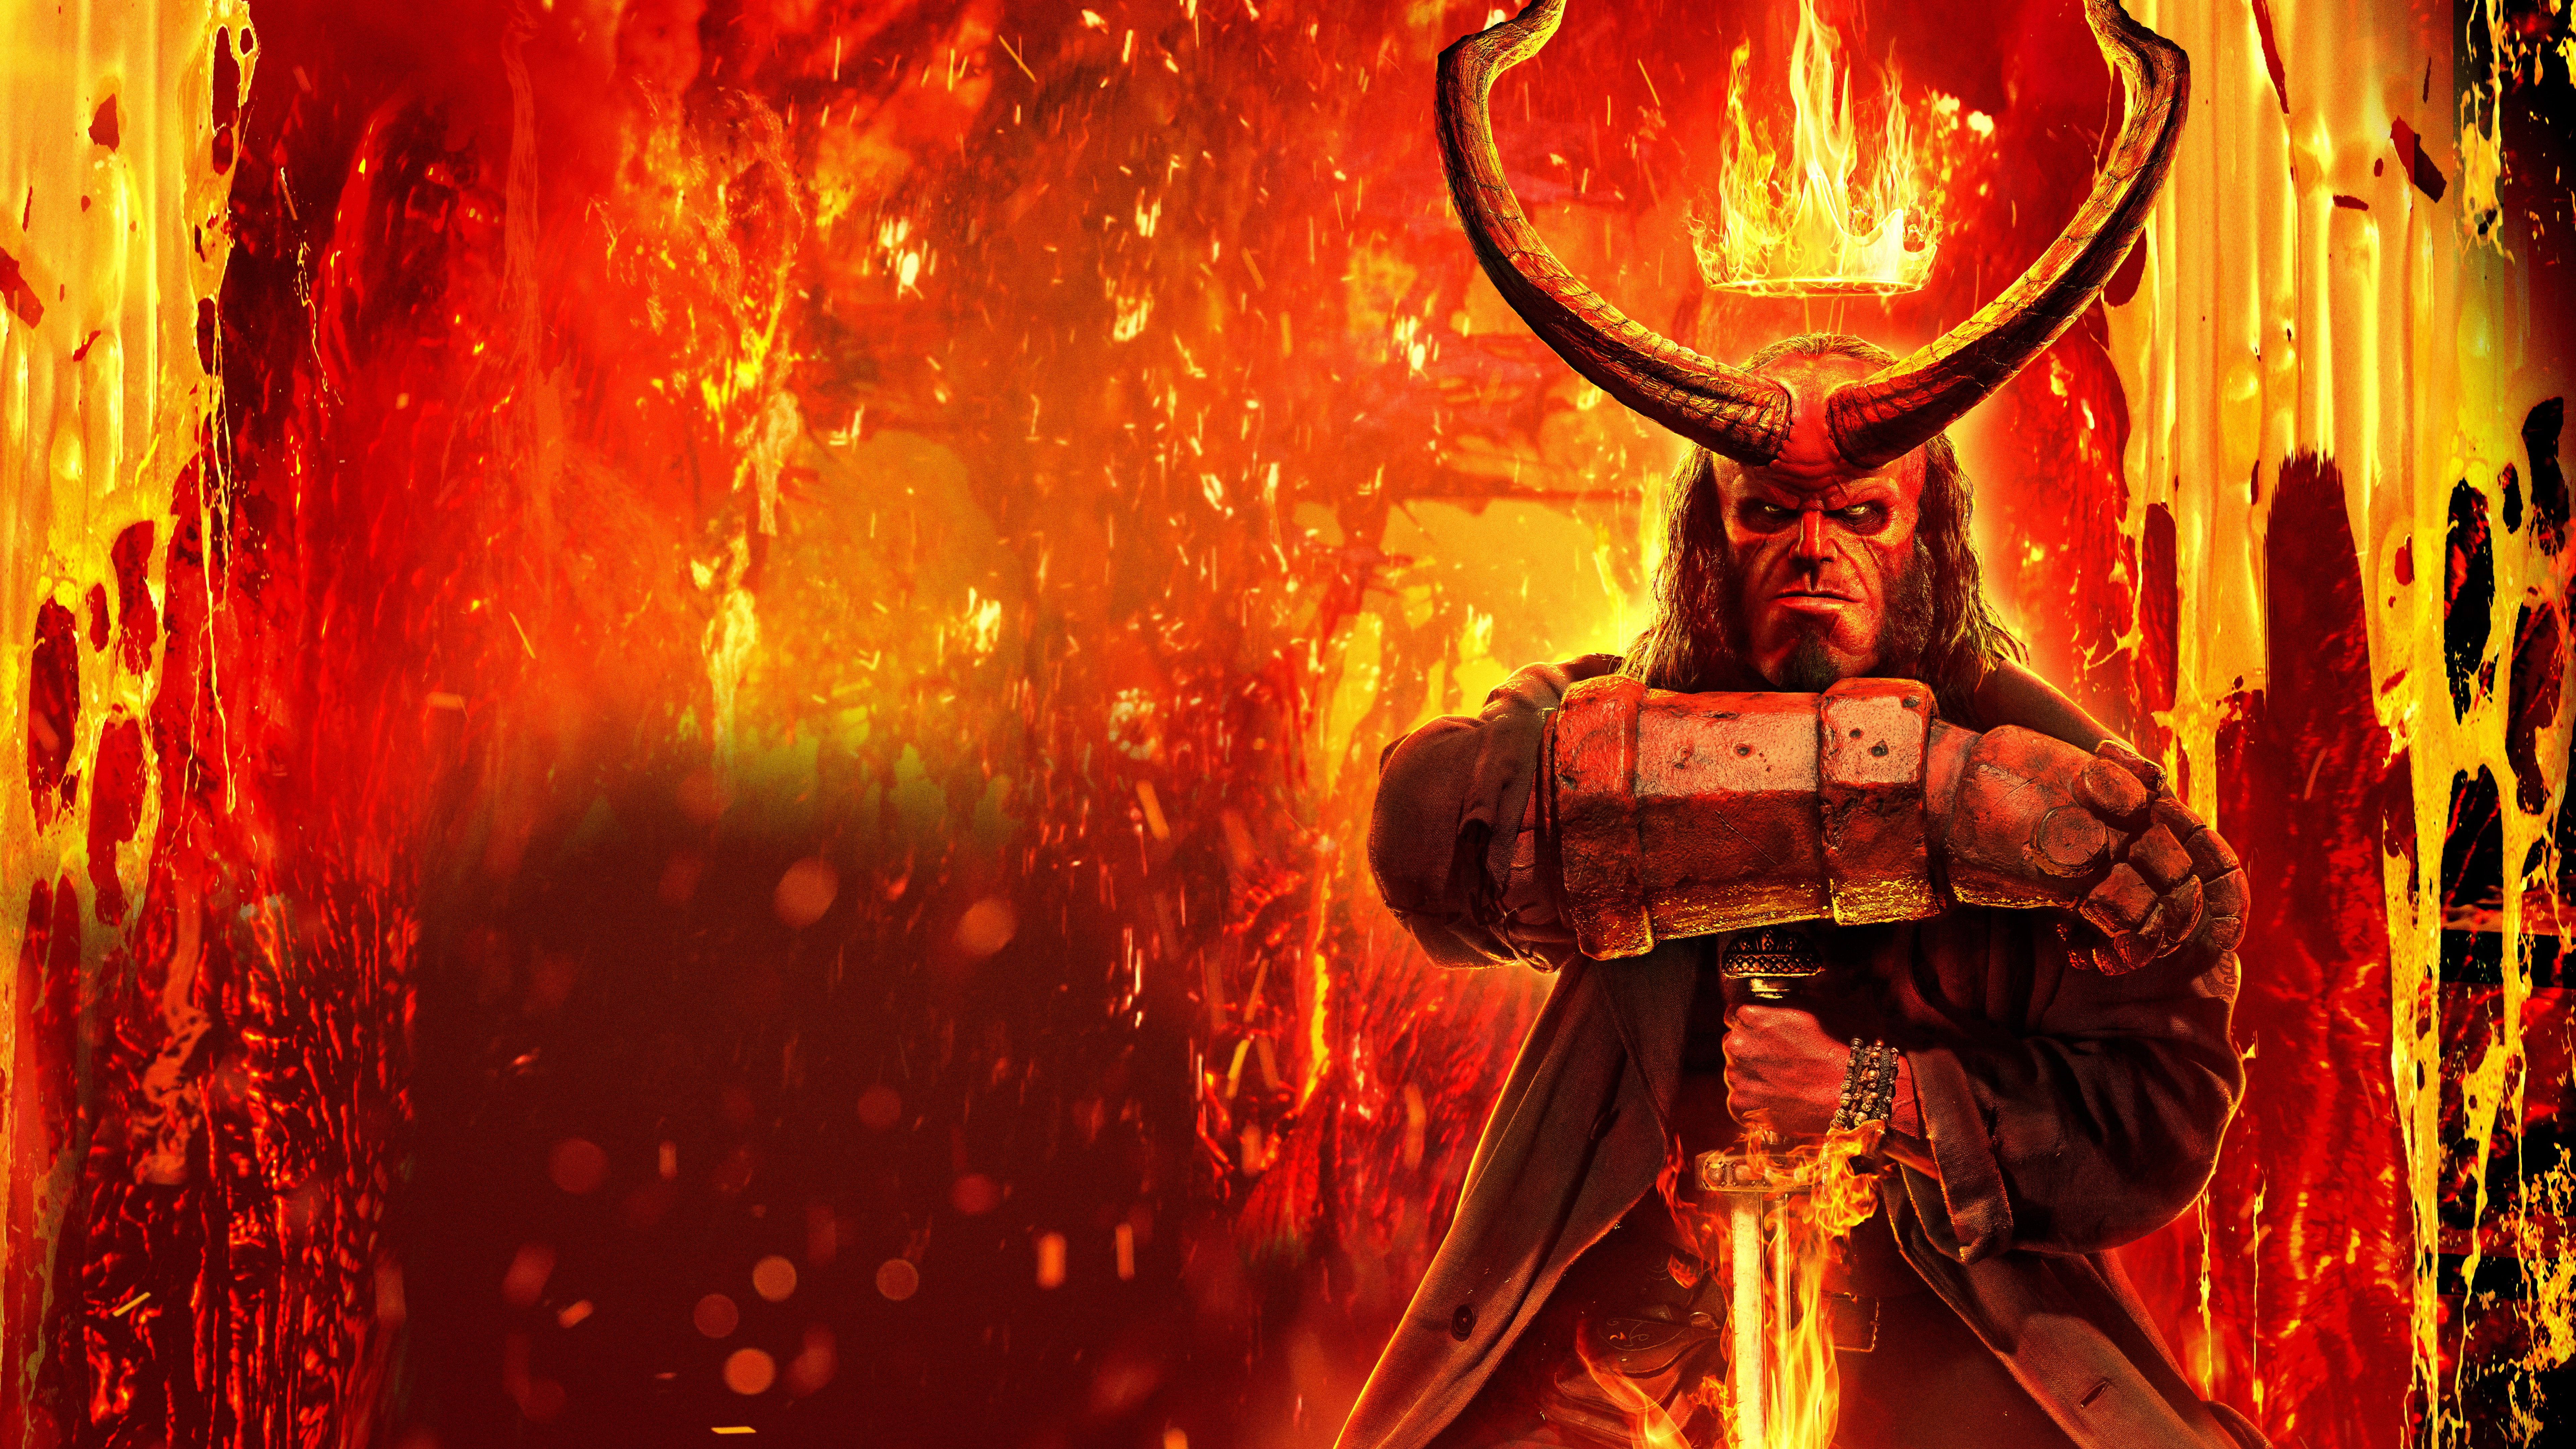 7680x4320 Hellboy 2019 8k, HD Movies, 4k Wallpapers, Images ...